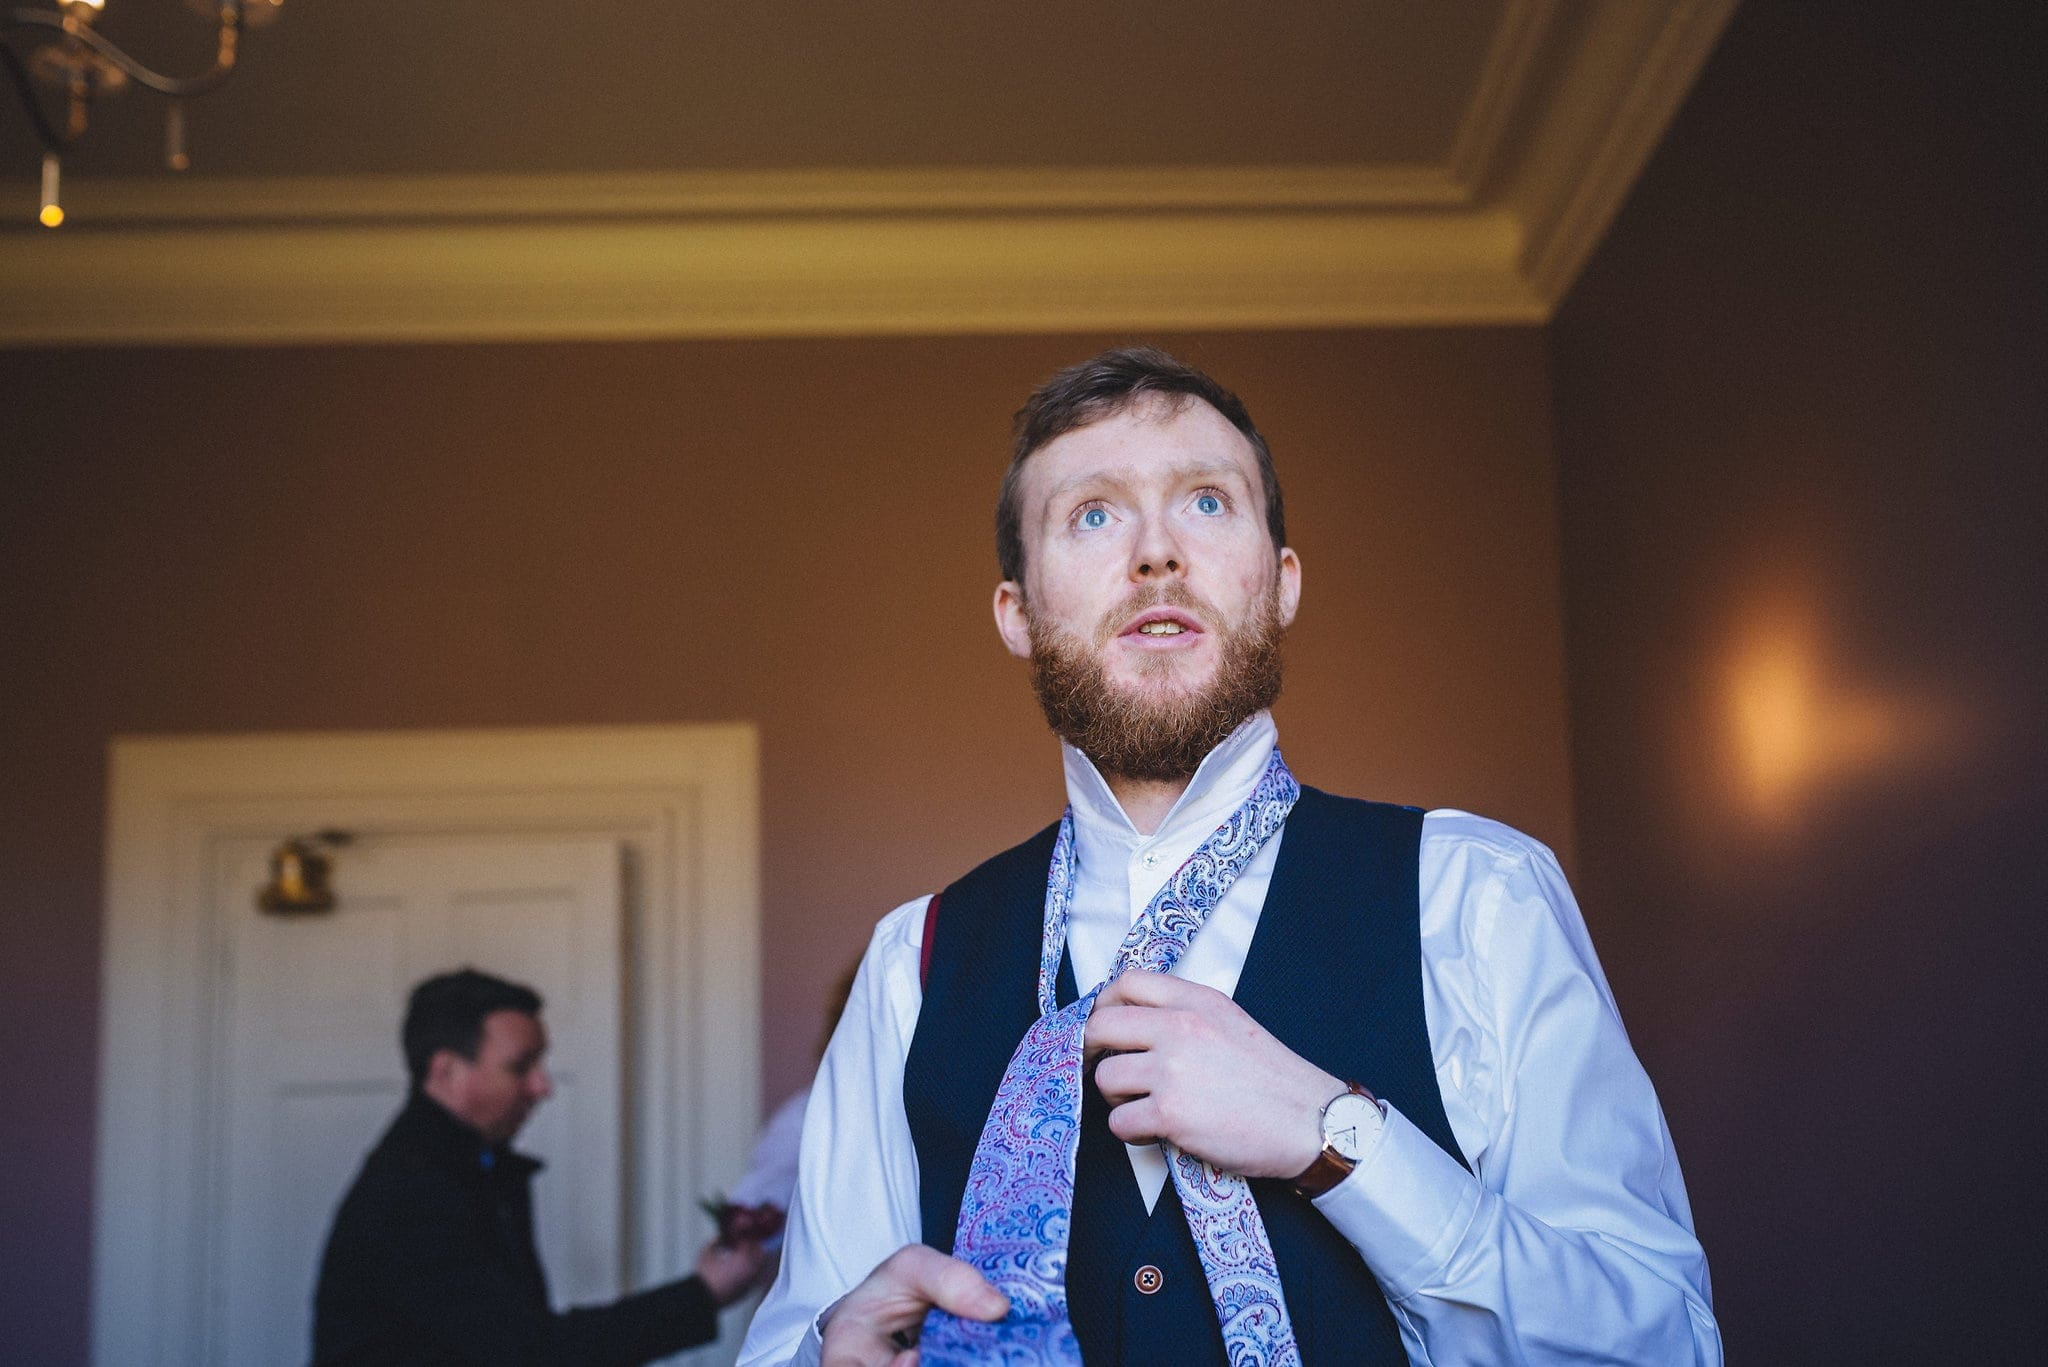 Groom ties paisley patterned tie